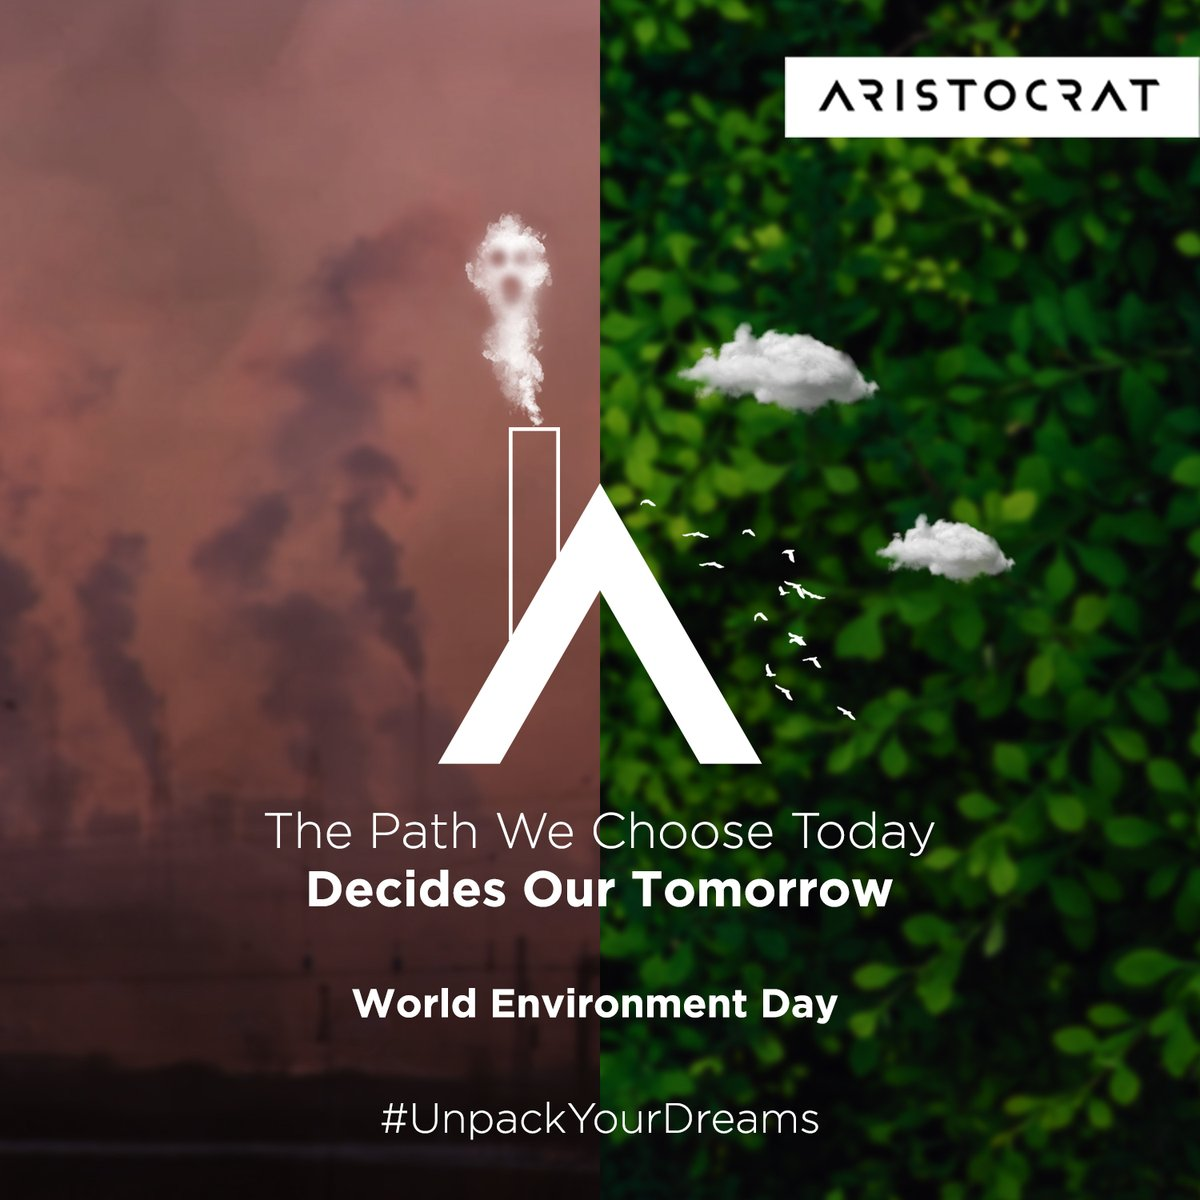 What lies ahead is in our hands. This Environment Day, let's commit ourselves to protect Mother Nature and welcome a green future.  #EnvironmentDay #WorldEnvironmentDay2020  #ForNature #CelebrateBiodiversity #SaveNature #GreenFuture #Aristocrat #AristoBags #UnpackYourDreams